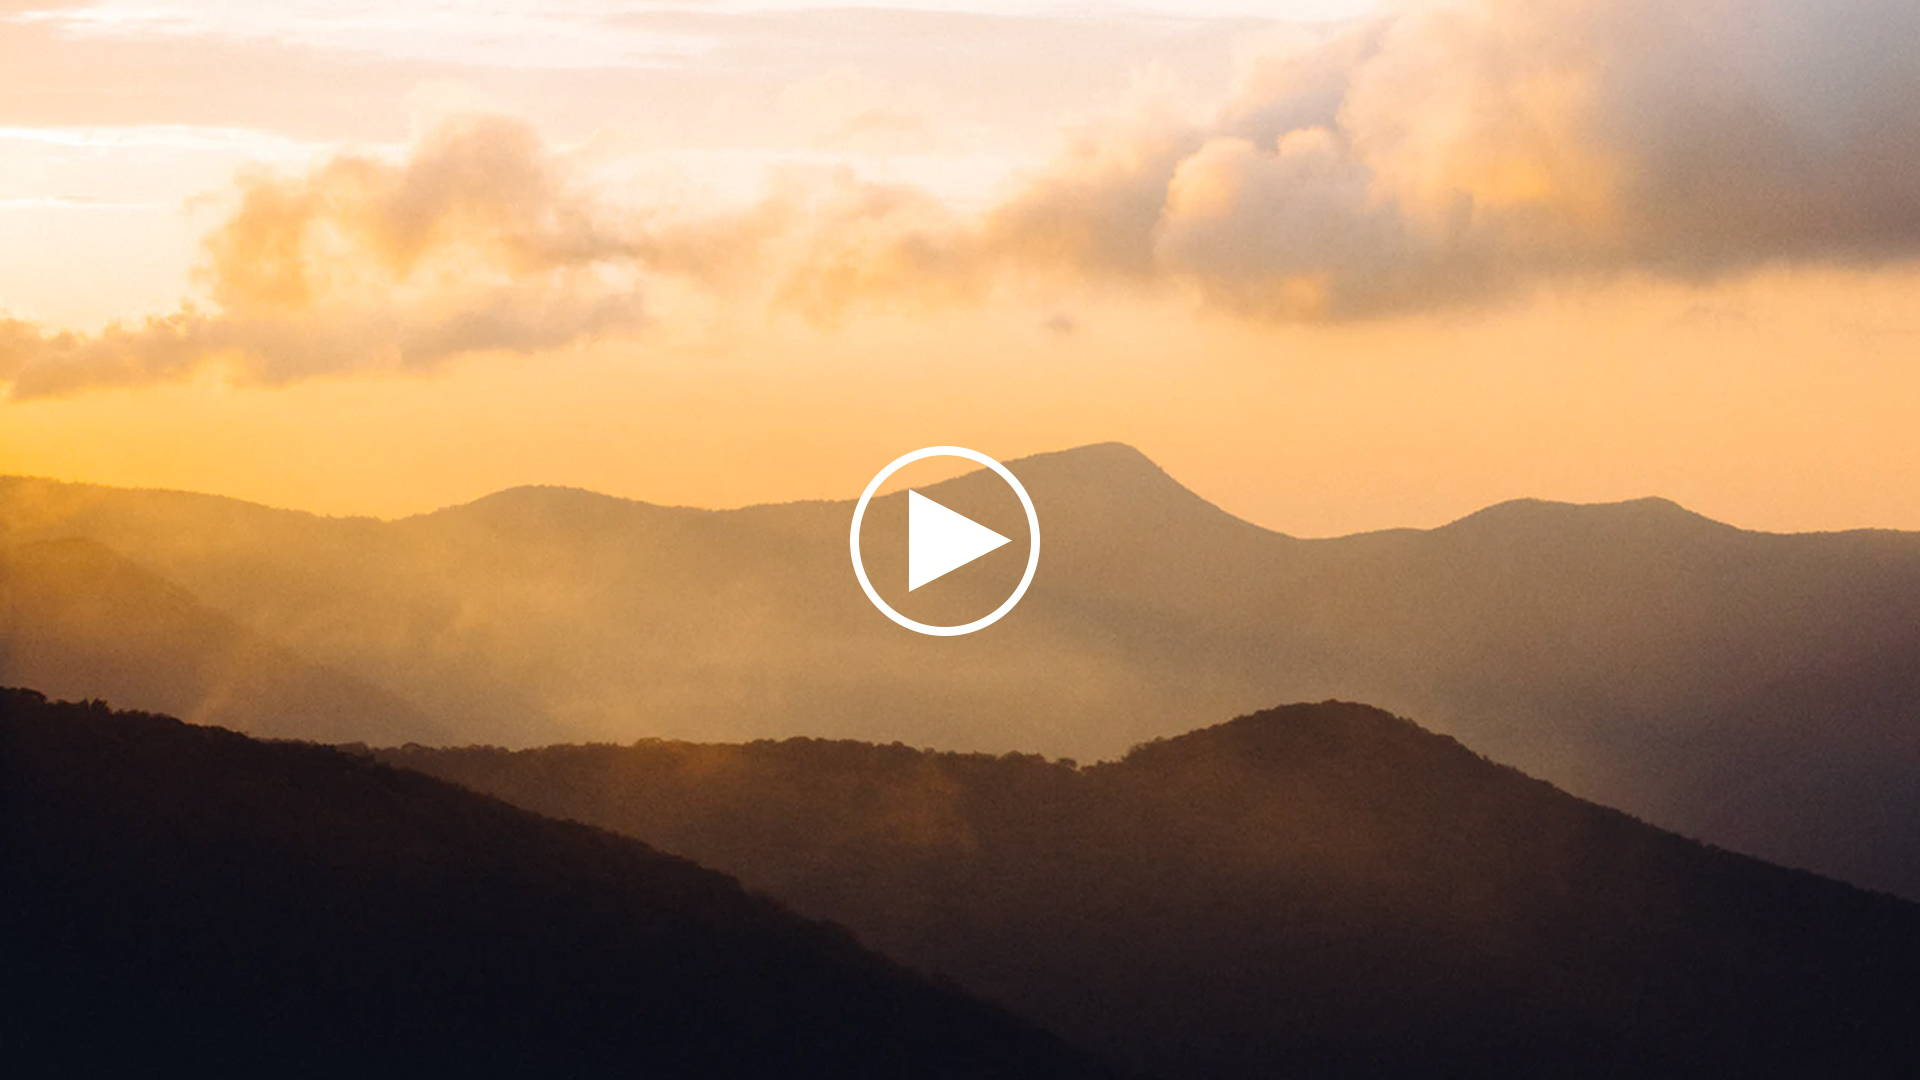 Picture of mountains in the morning that link to Alabaster YouTube video titled: Morning Creativity | Christian Guided Meditation and Prayer